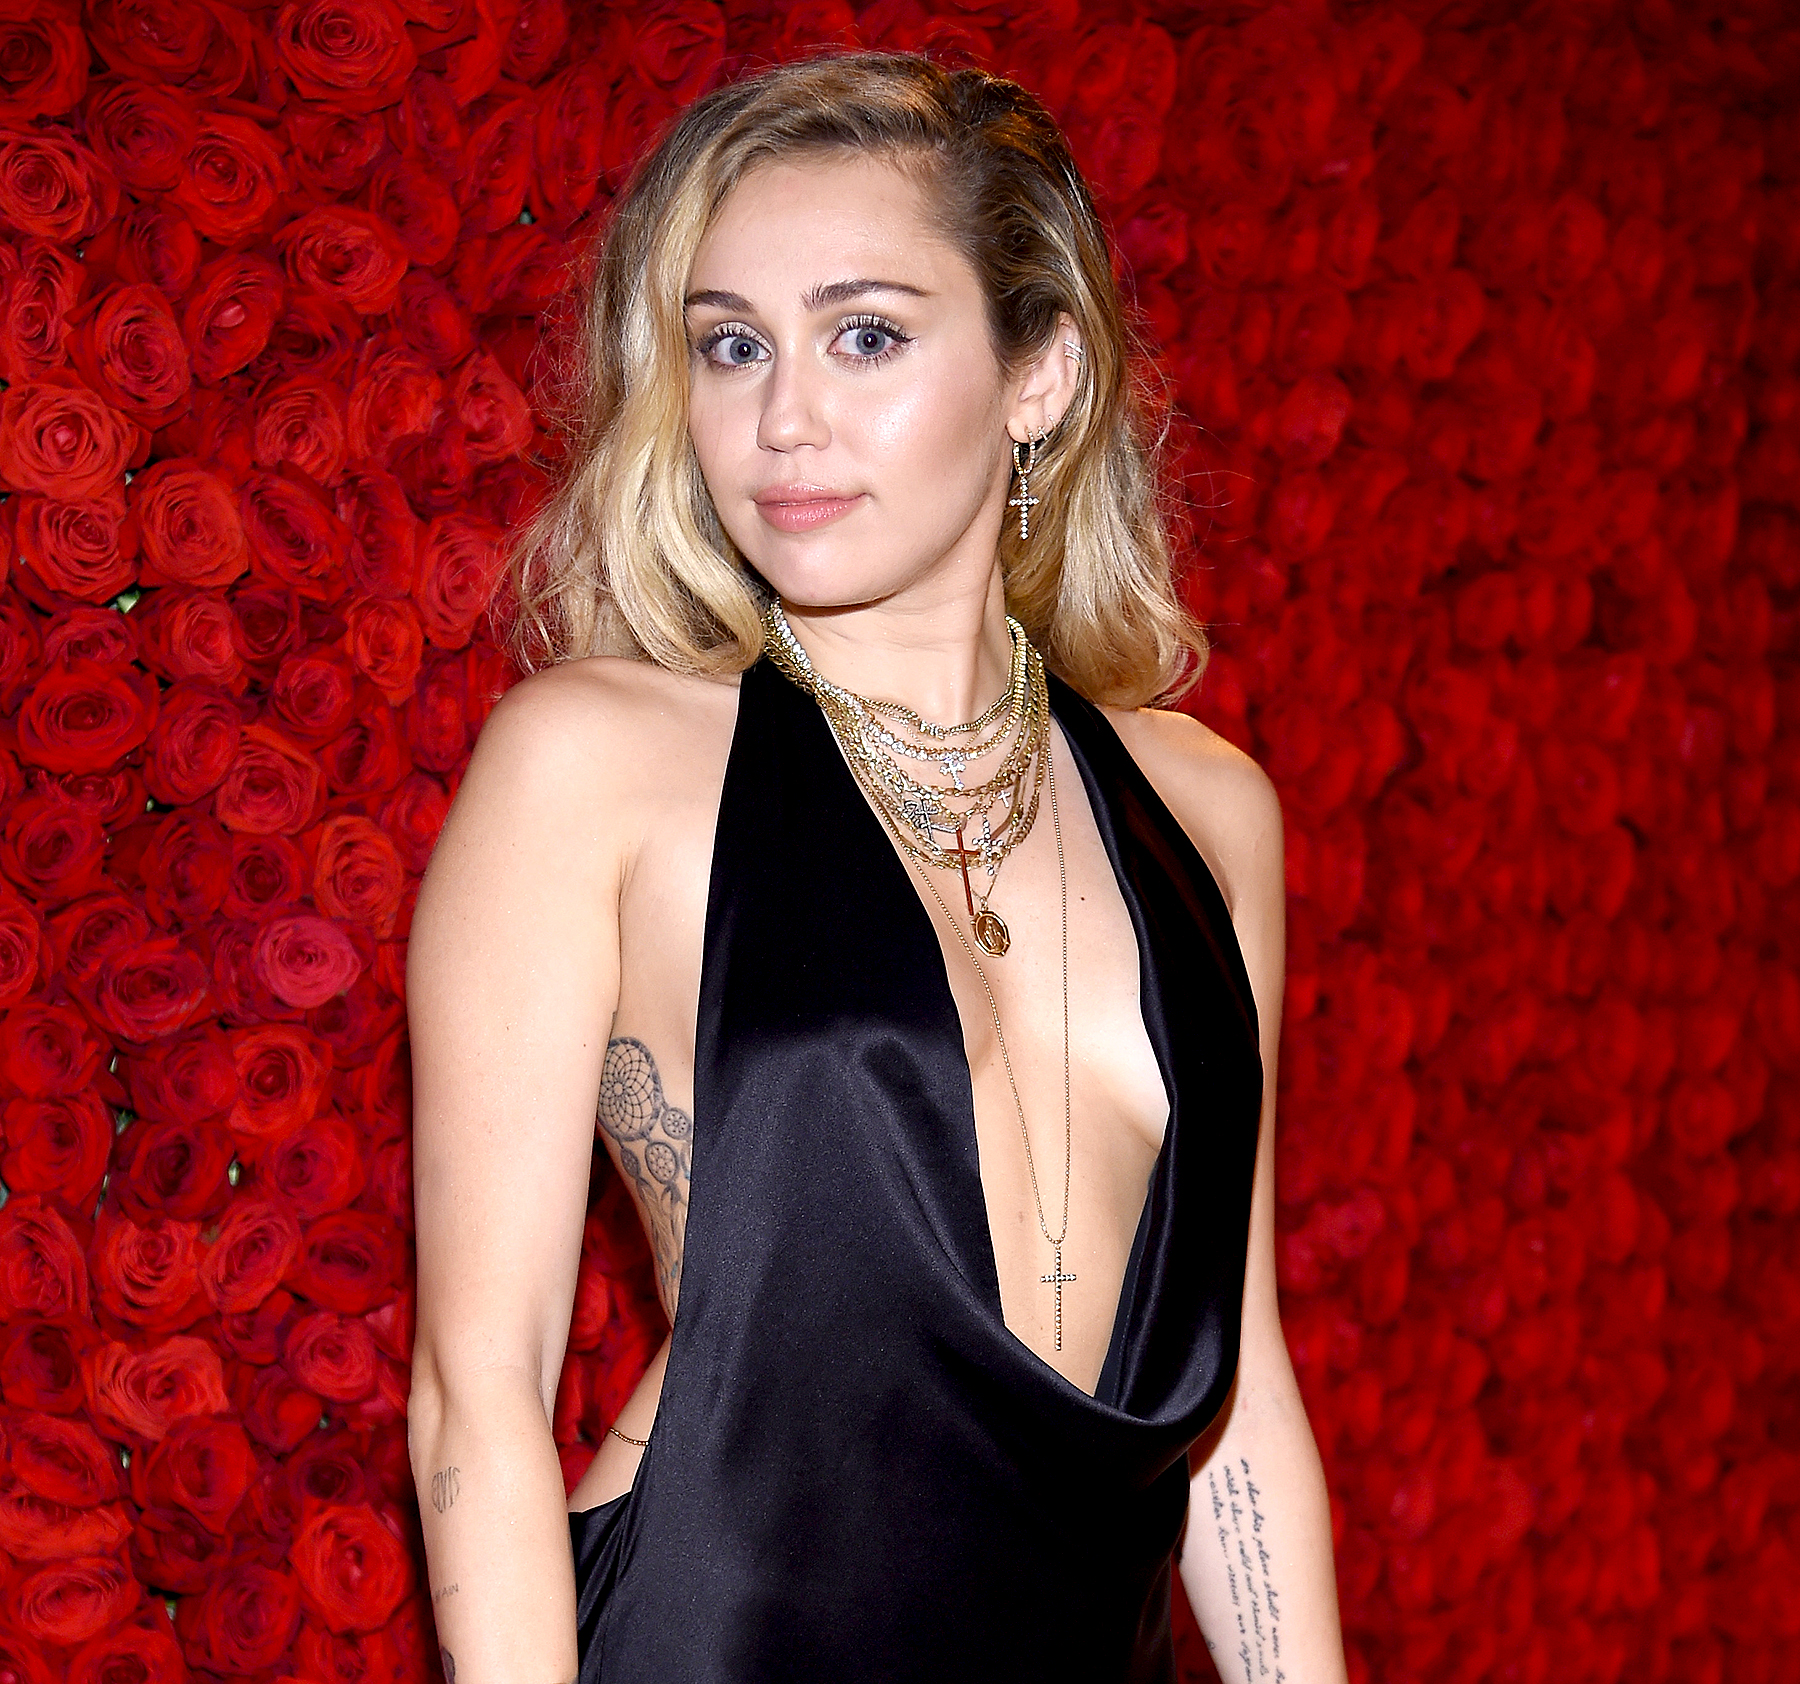 Photo Miley Cyrus naked (15 photo), Topless, Cleavage, Instagram, legs 2020